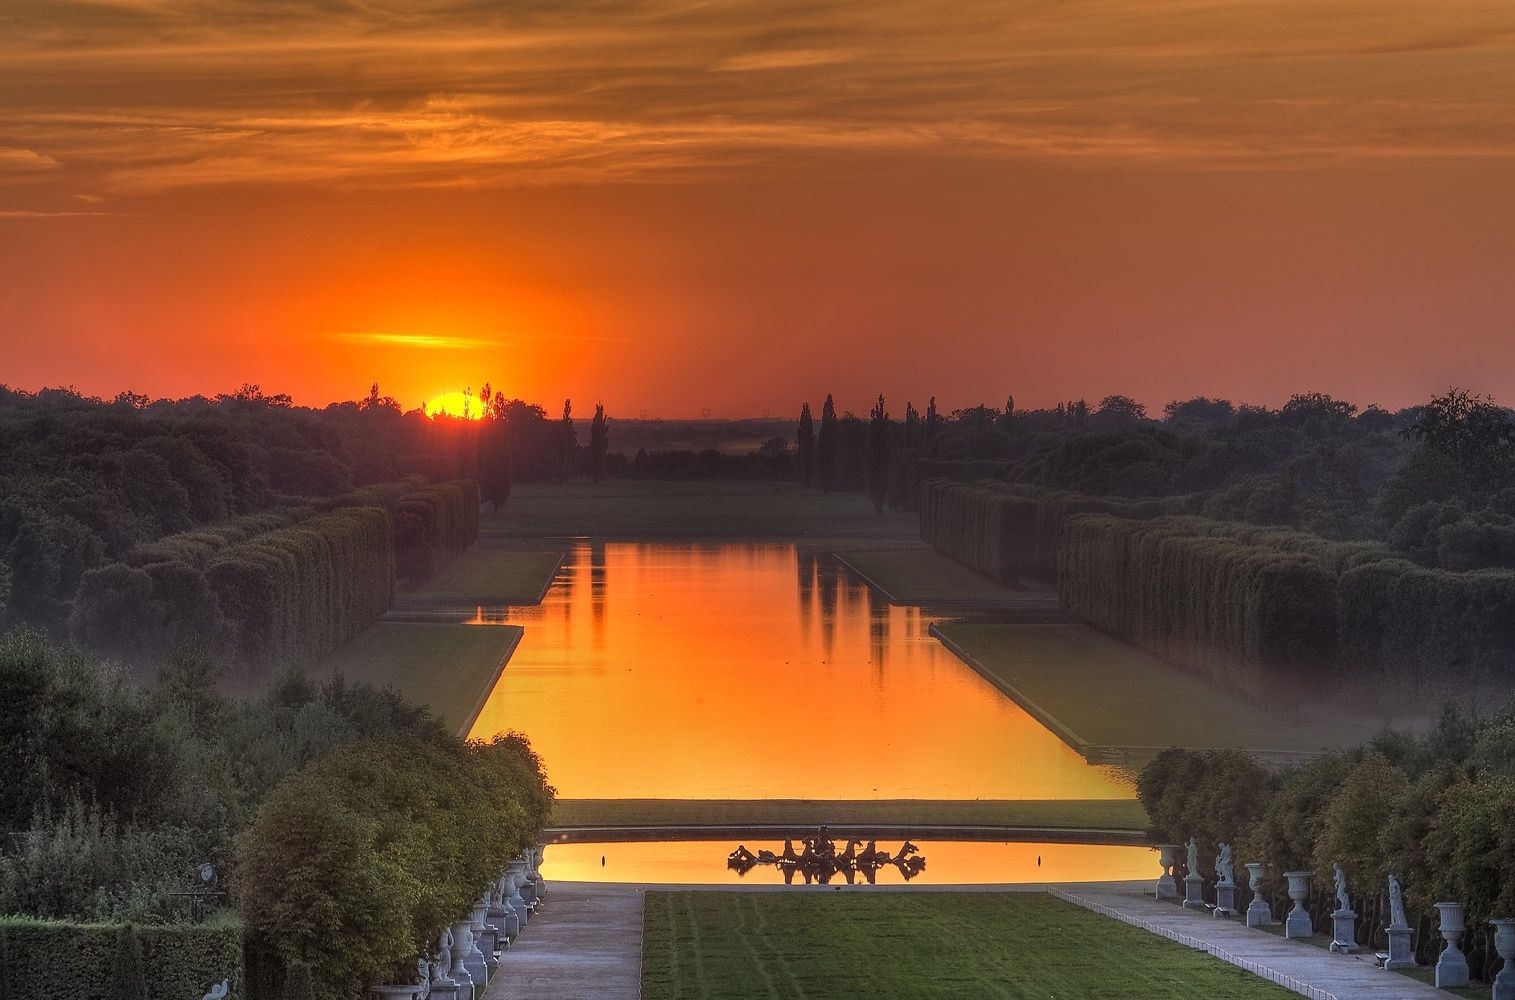 Le grand canal - Versailles - by Claude ROZIER-CHABERT